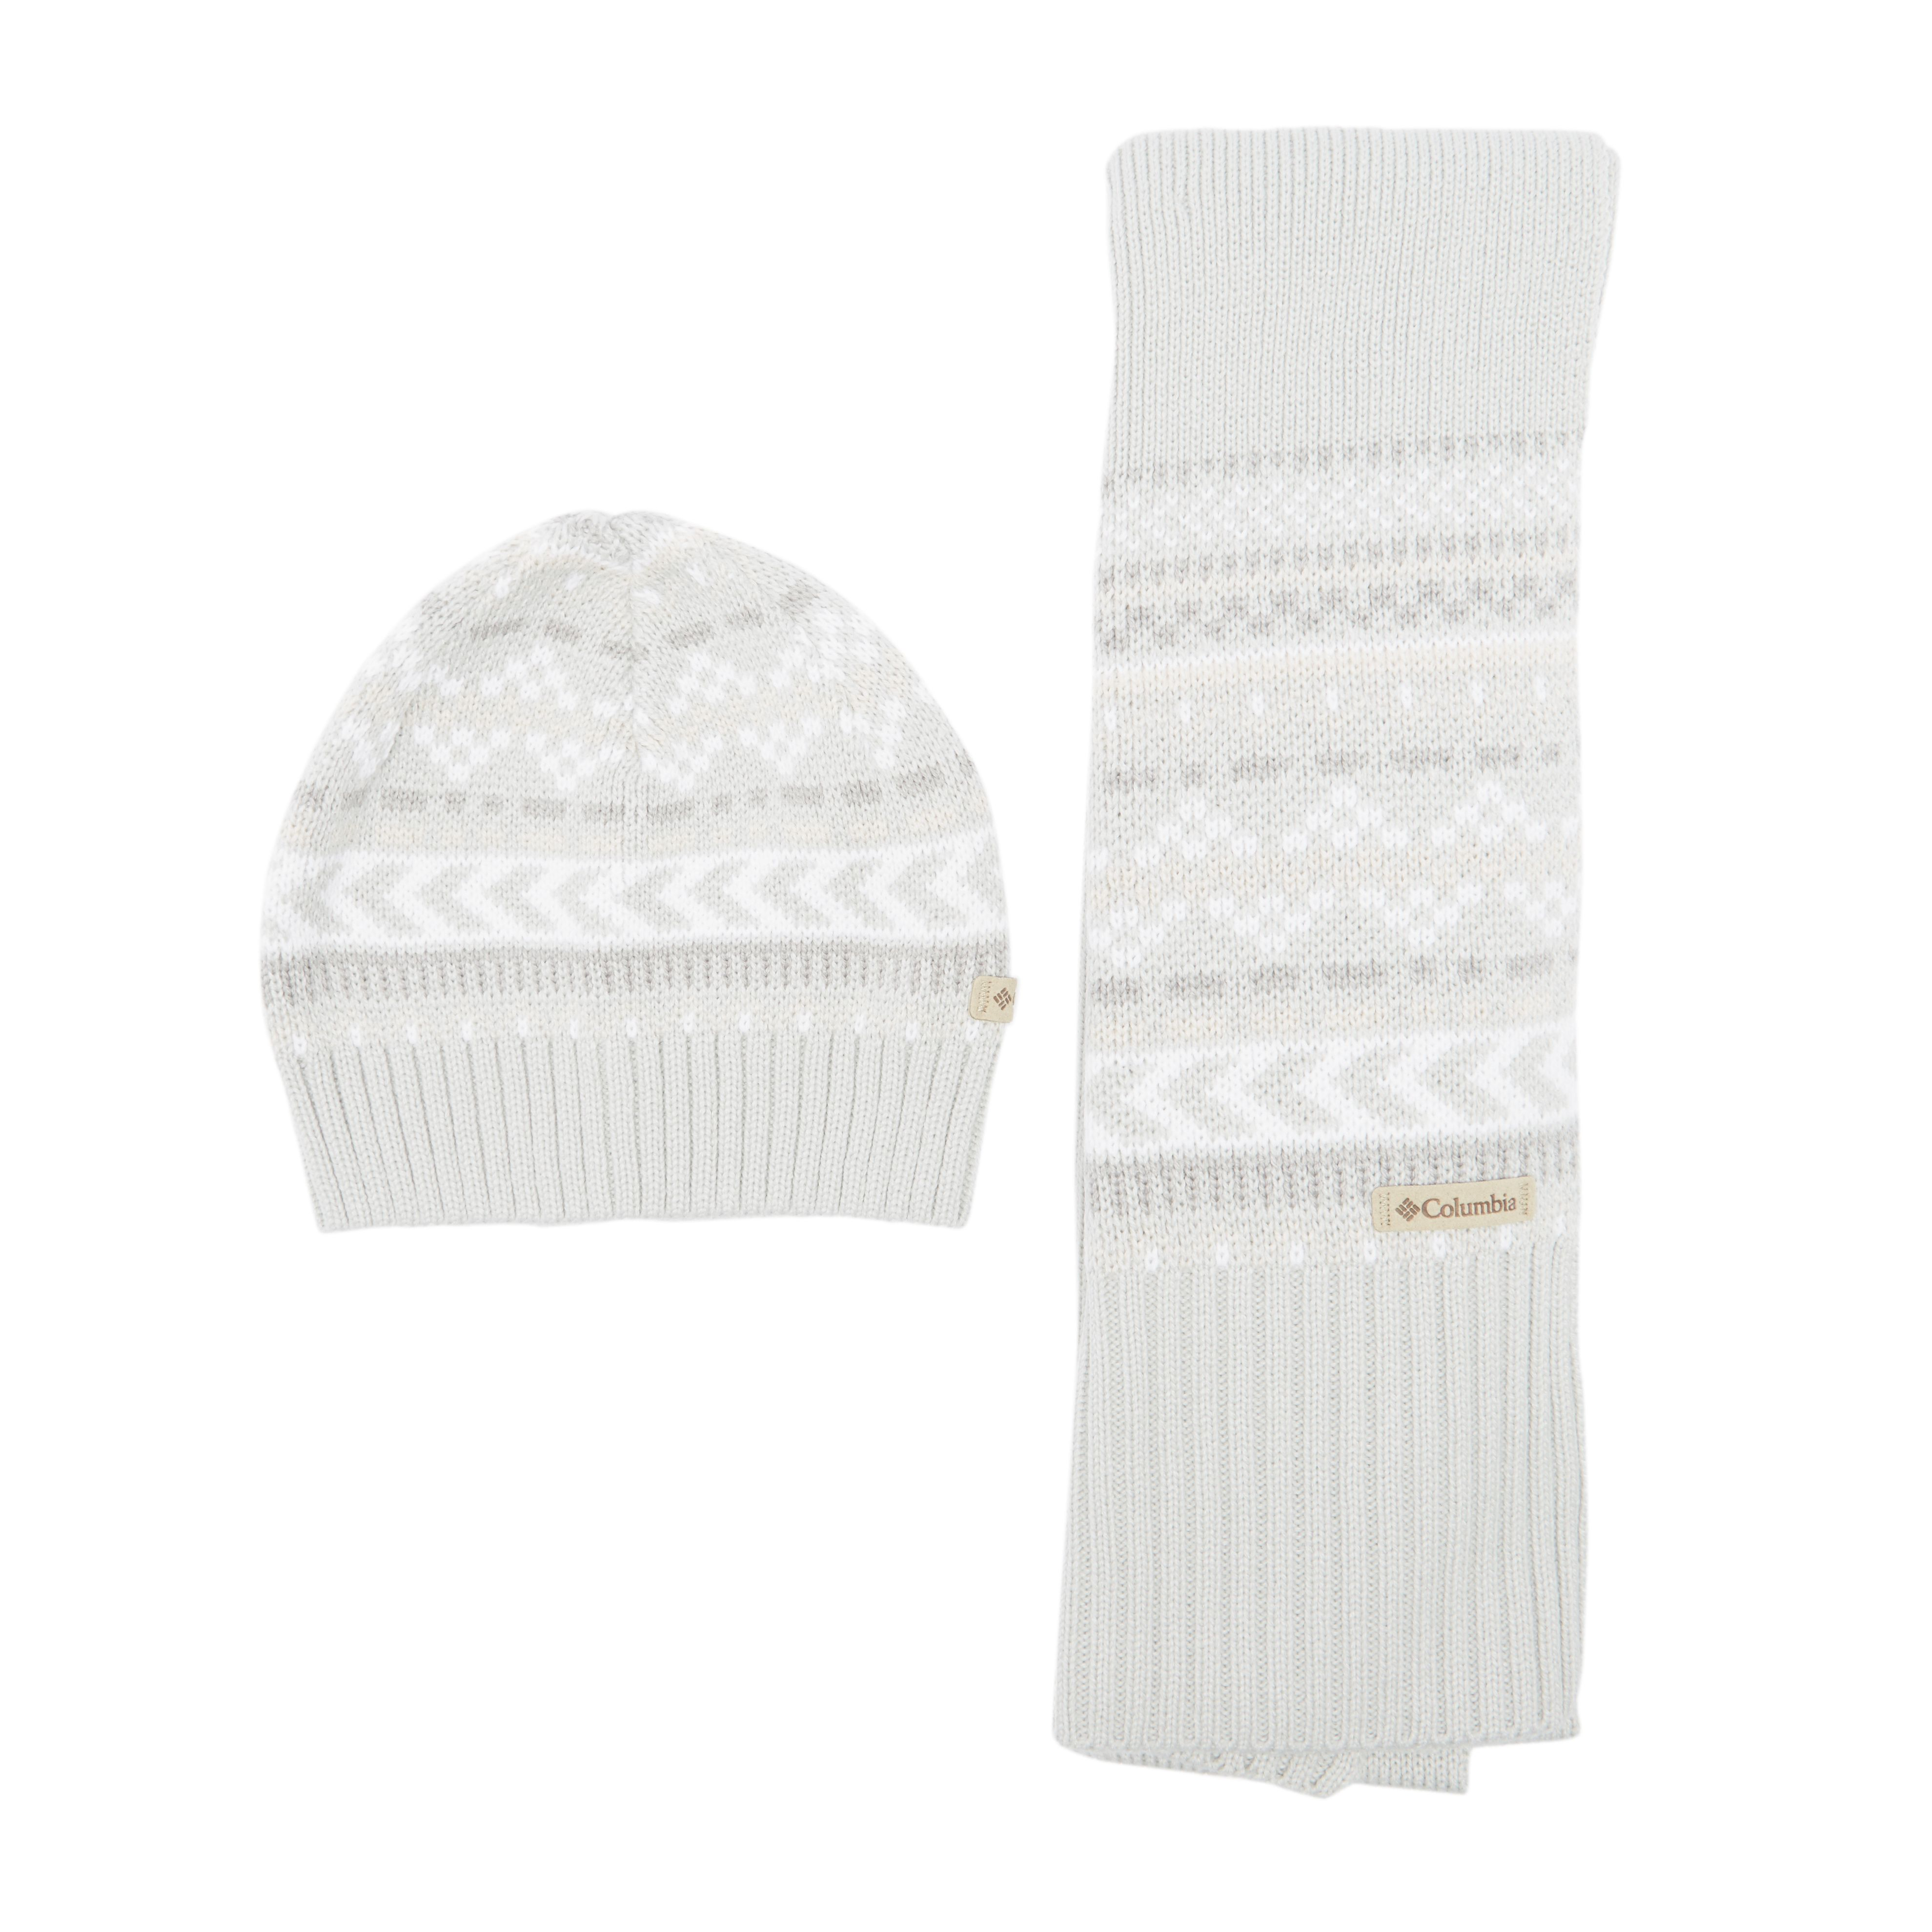 COLUMBIA Women's Hat and Scarf Set